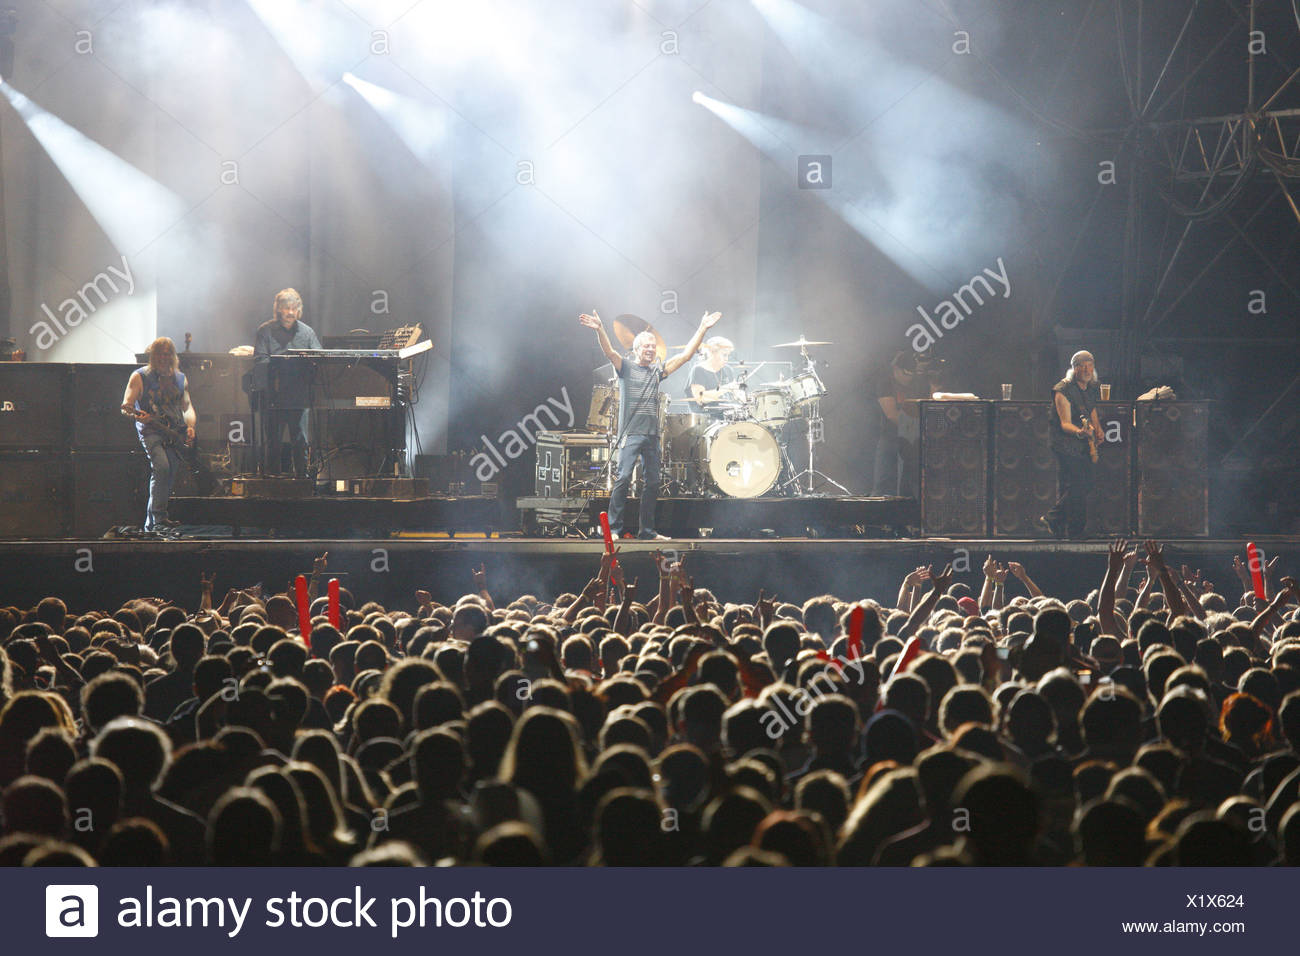 Deep Purple, English rock band, Open Air Festival, Muehldorf am Inn, Bavaria, Germany Stock Photo